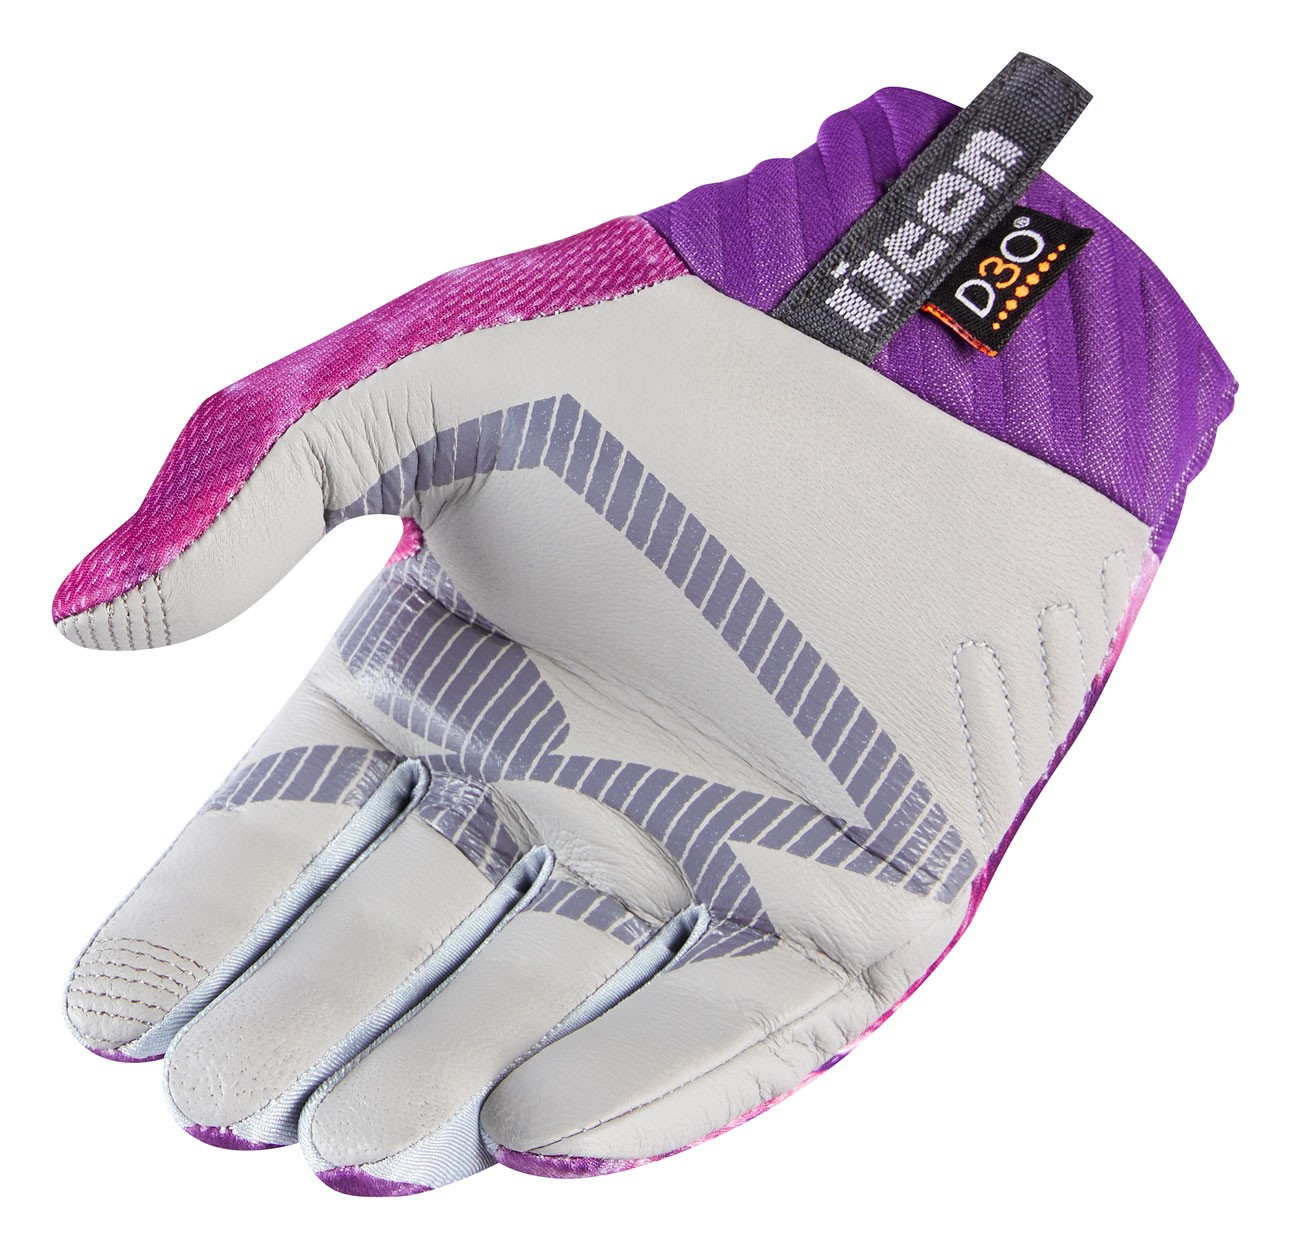 Motorcycle gloves pink - Icon Ladies Anthem Sweet Dreams Textile Touchscreen Motorcycle Gloves Pink Purple